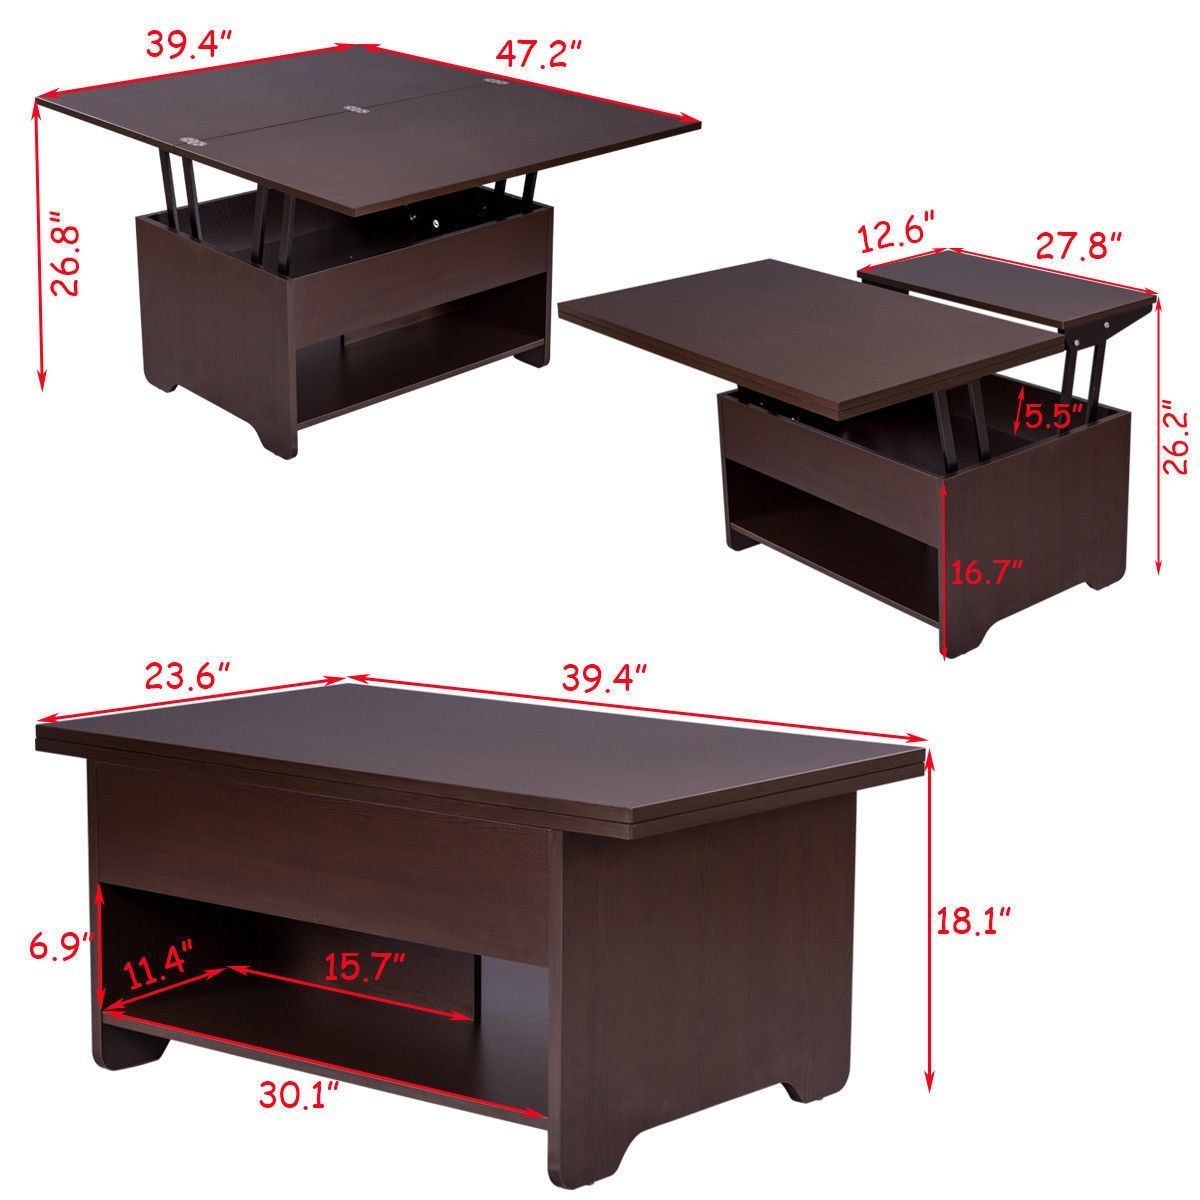 Coffee table 3 in 1 lift top with hidden storage